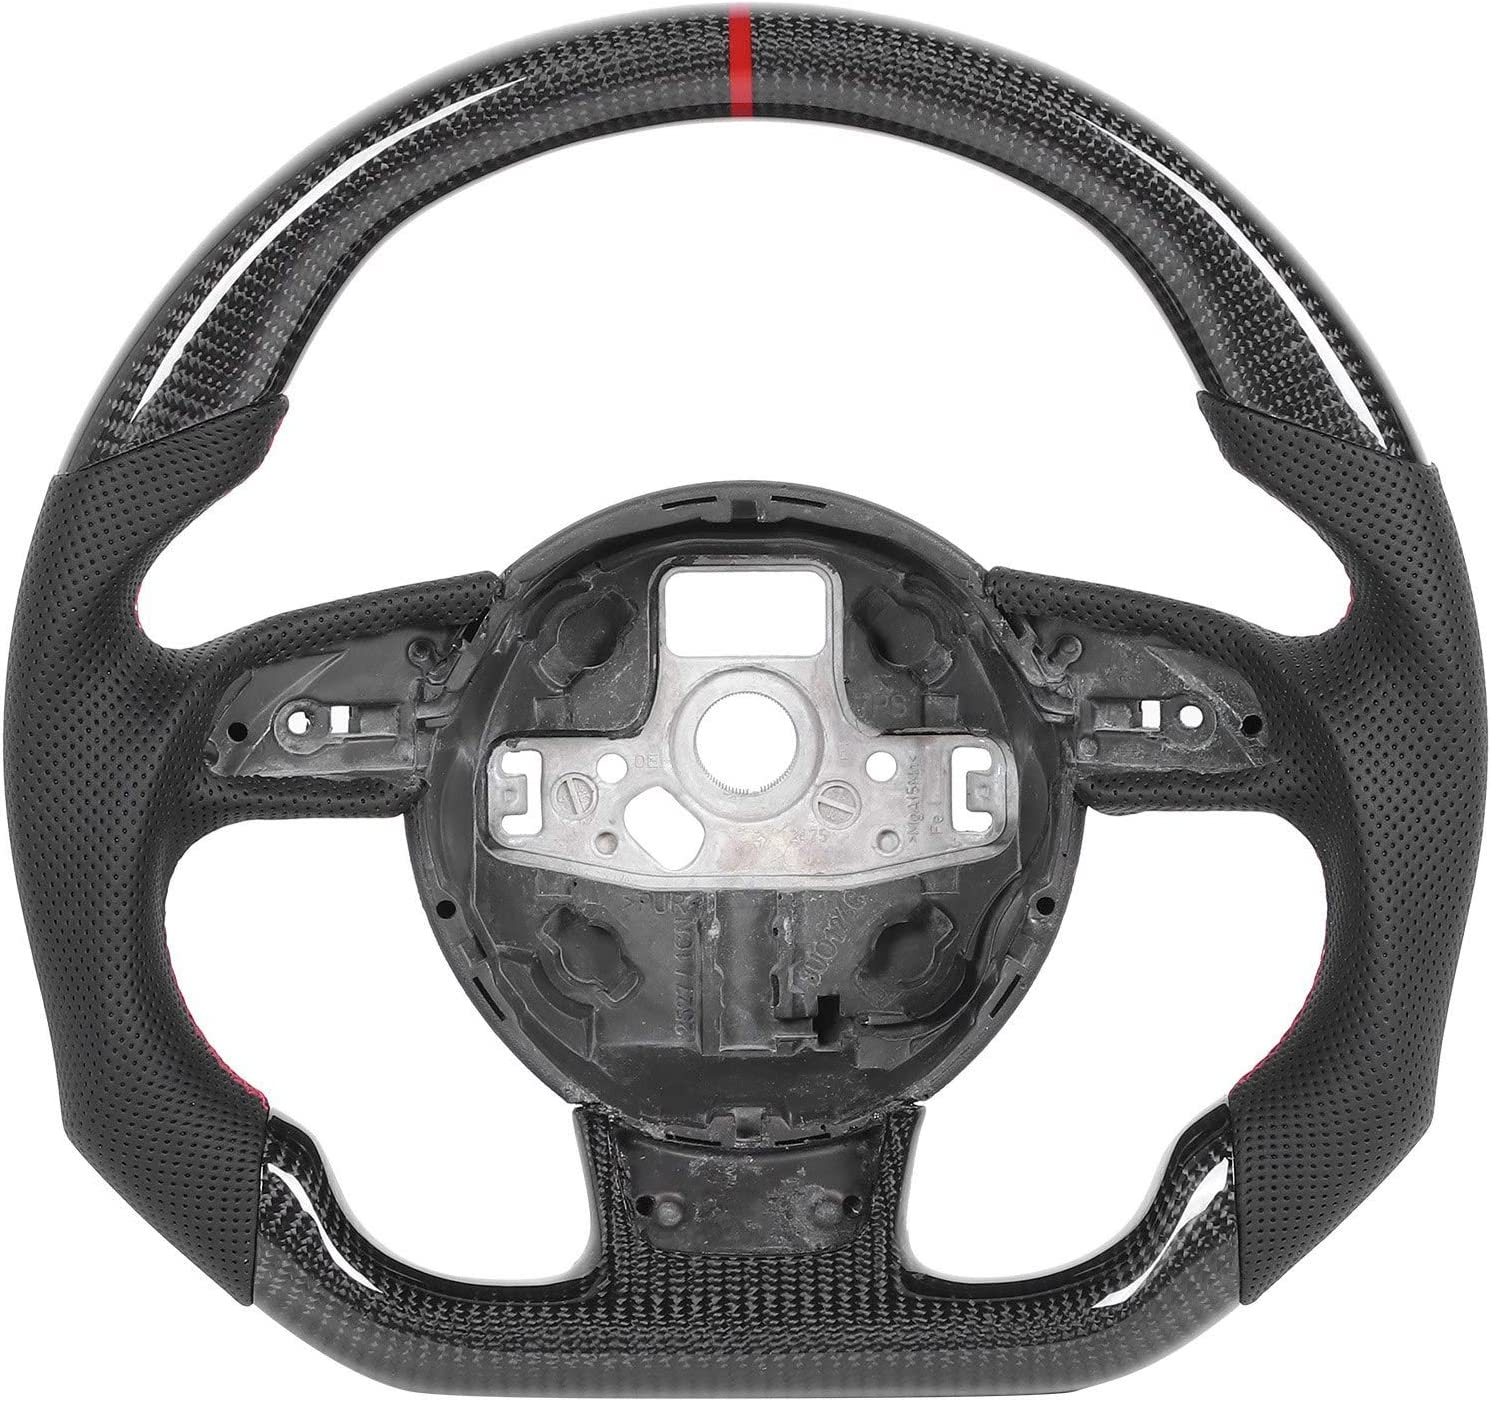 Yctze Can be Don't miss the campaign customized Carbon Nappa Steering Perfor Popular product Wheel Fiber